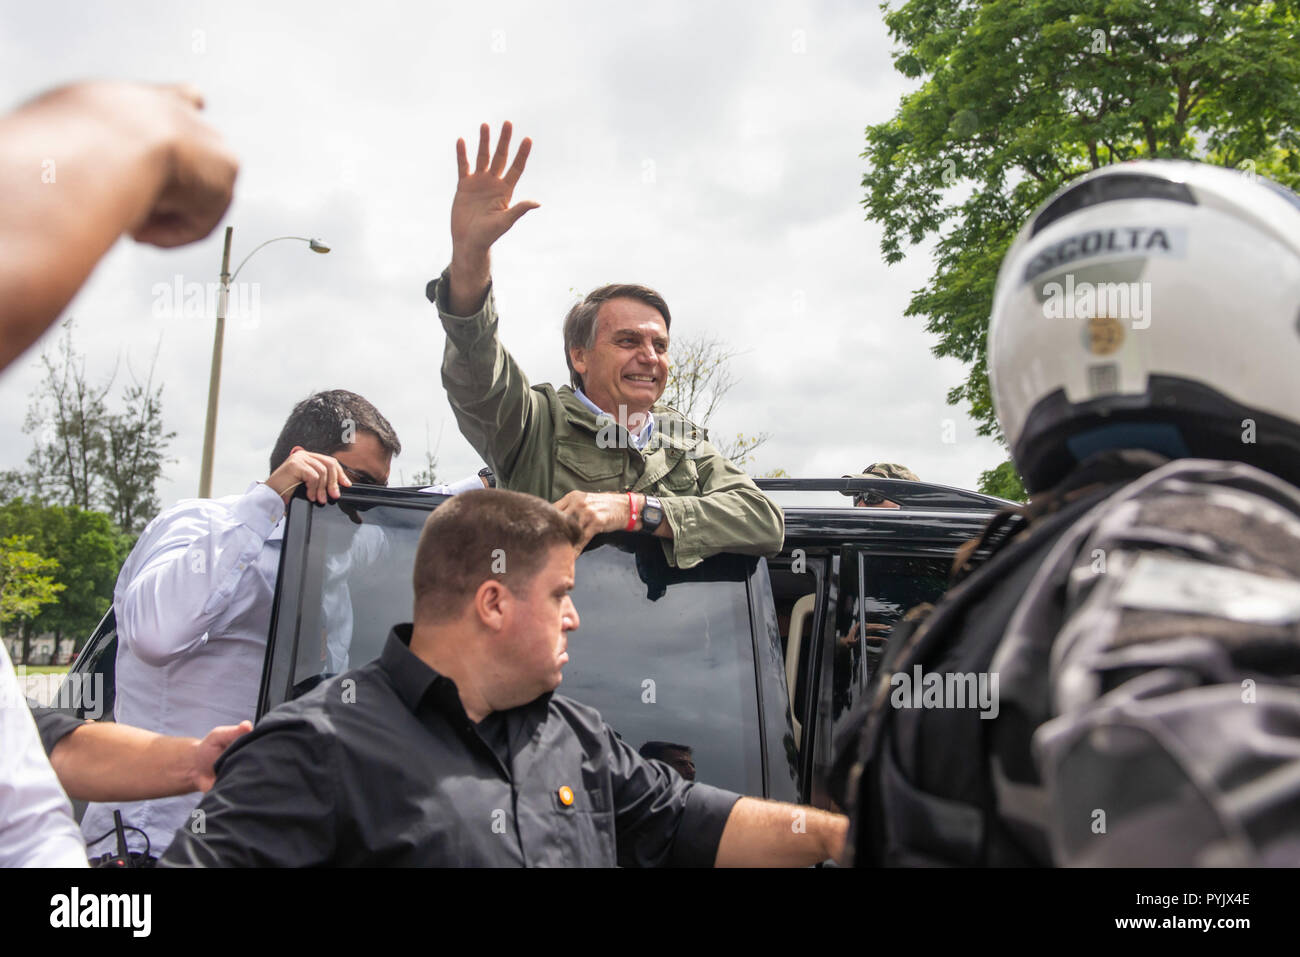 Rio De Janeiro, Brazil. 28th Oct, 2018. Jair Bolsonaro at the exit of the voting station in the second round, in Rio de Janeiro. Credit: Cristiane Mota/FotoArena/Alamy Live News - Stock Image